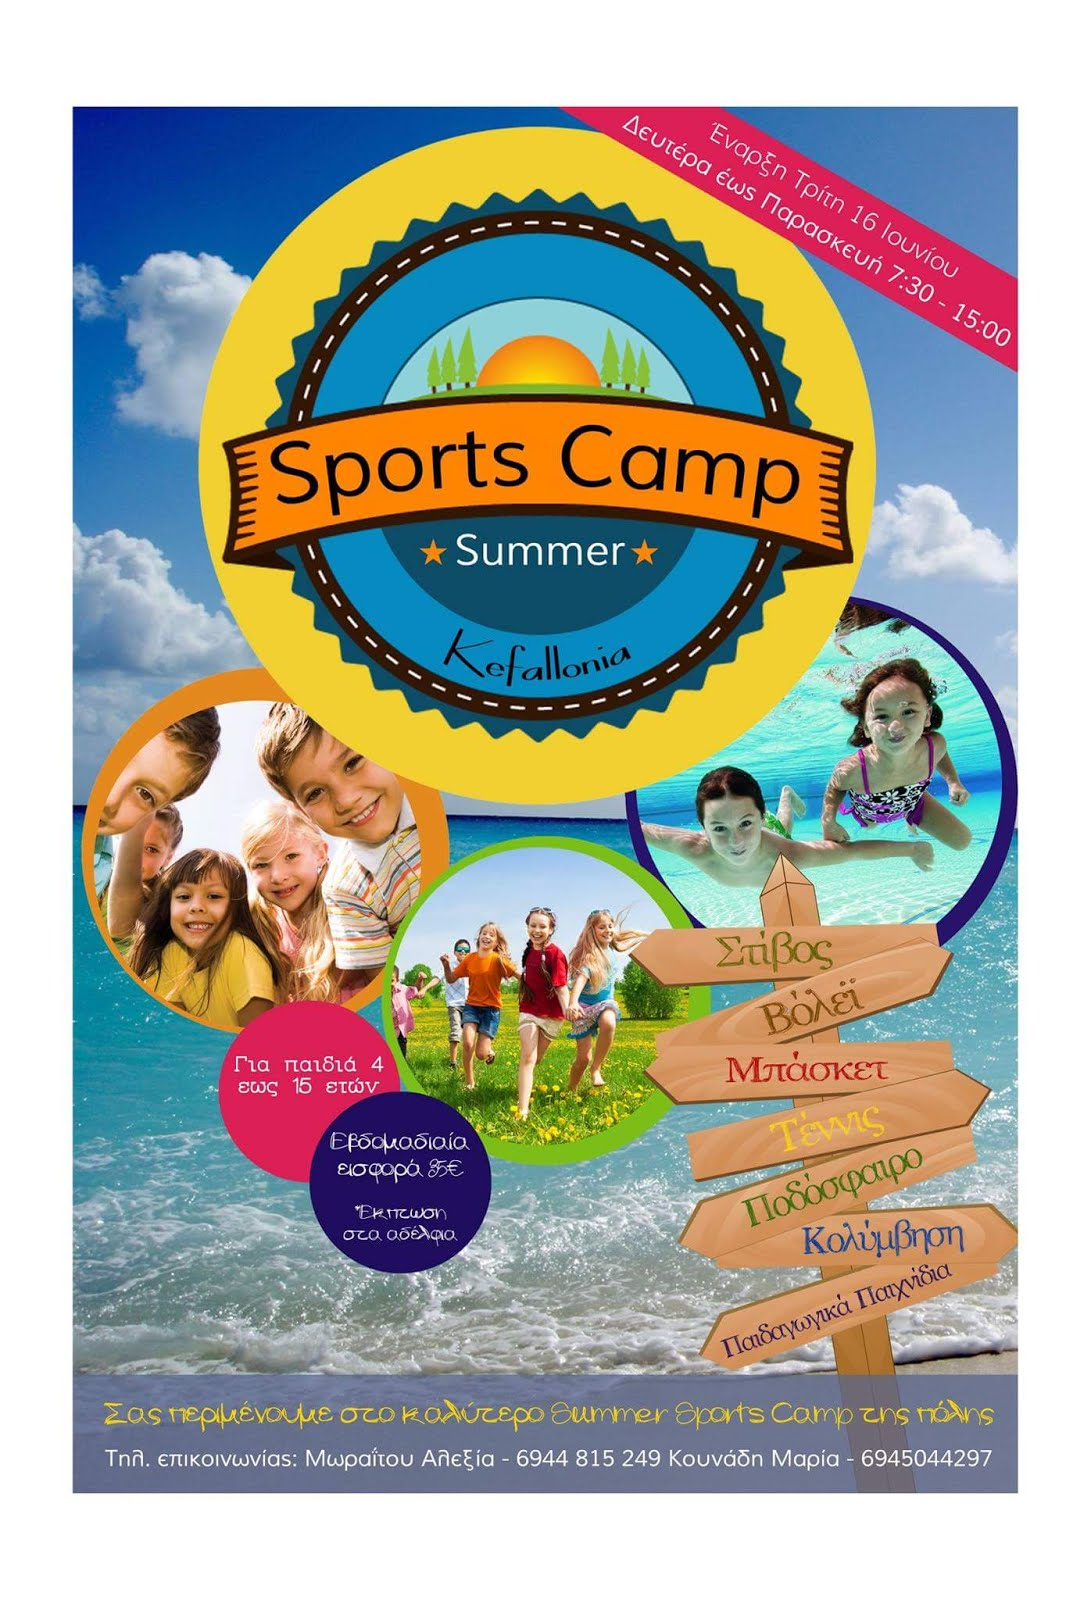 Sports camb summer Kefallonia